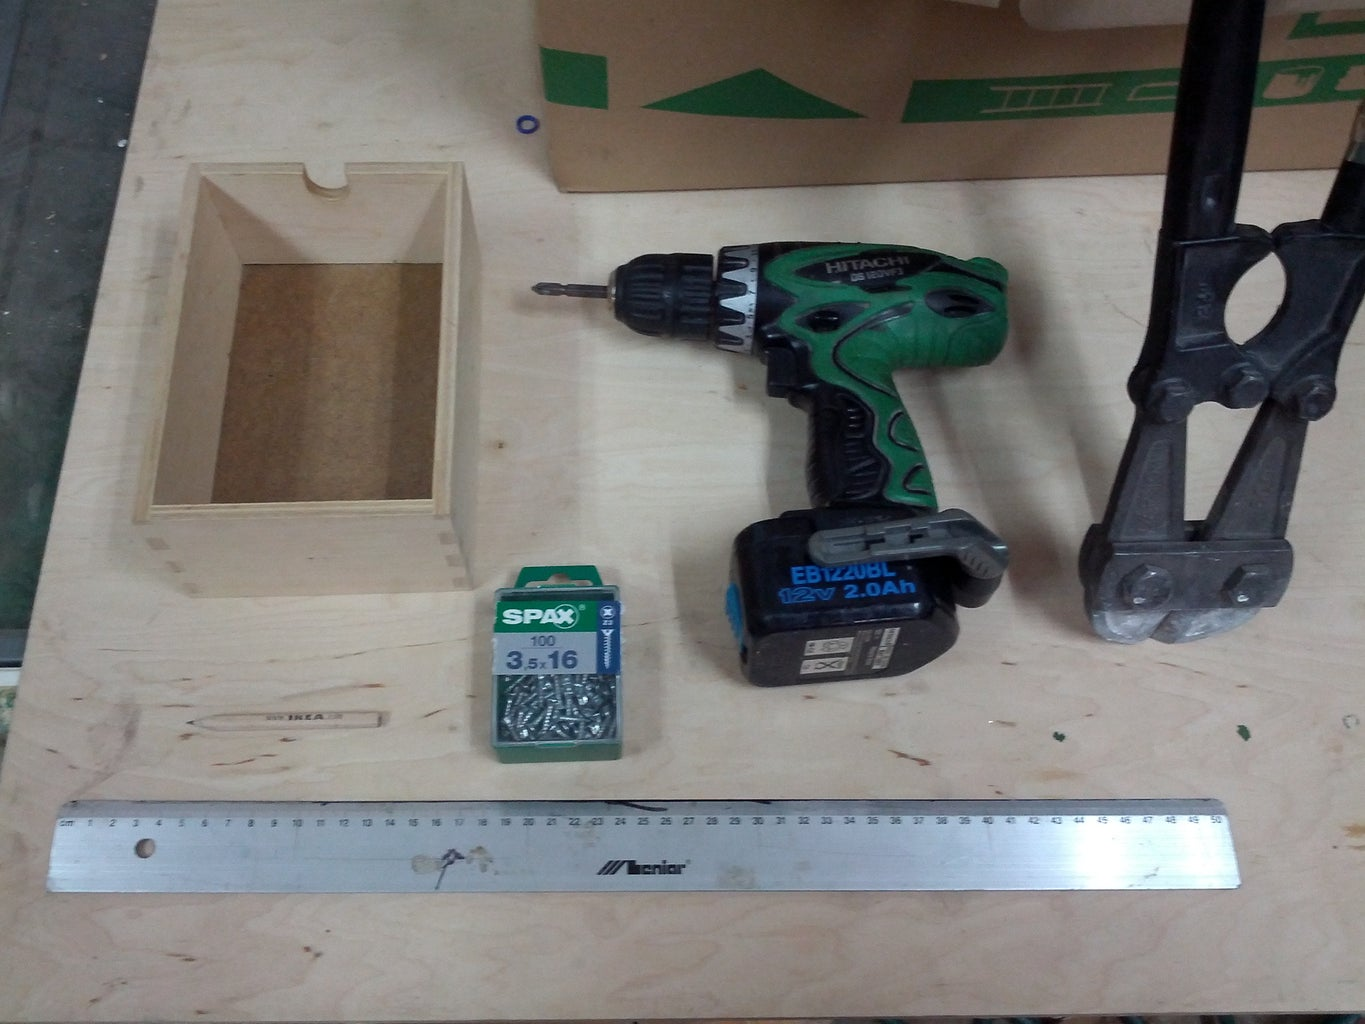 Required Parts and Tools